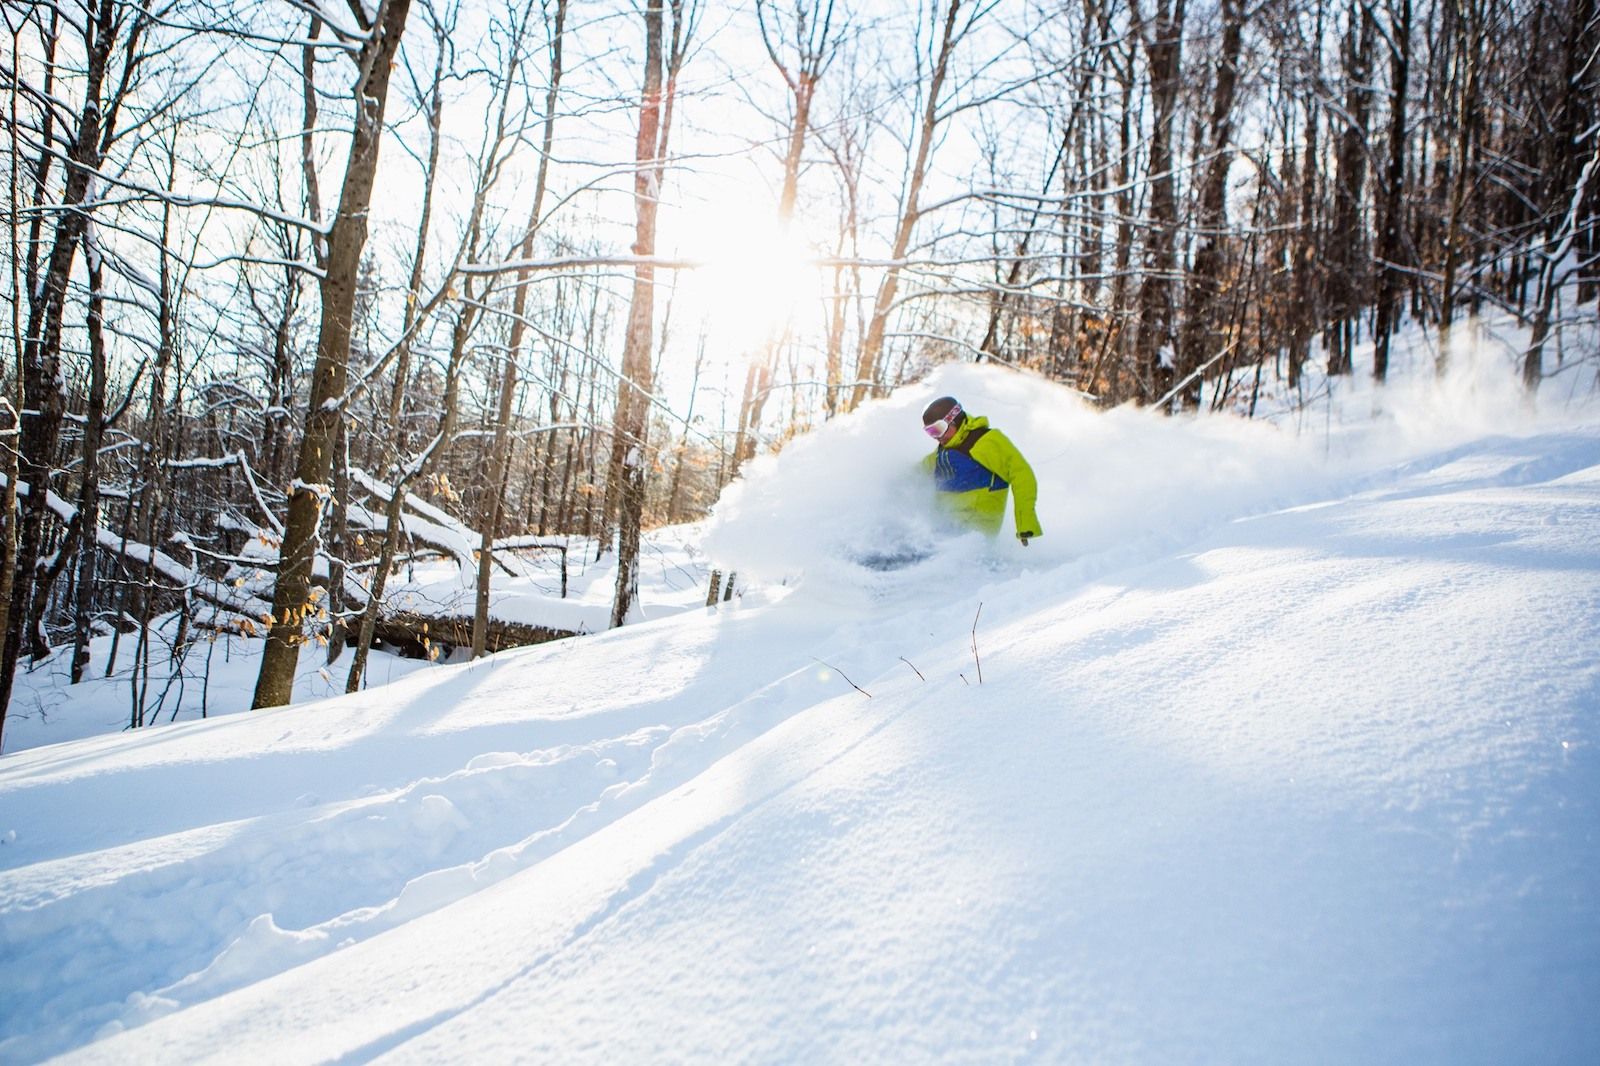 Image of a snowboarder in green shredding powdery snow at Mt. Abram Ski Area in Maine